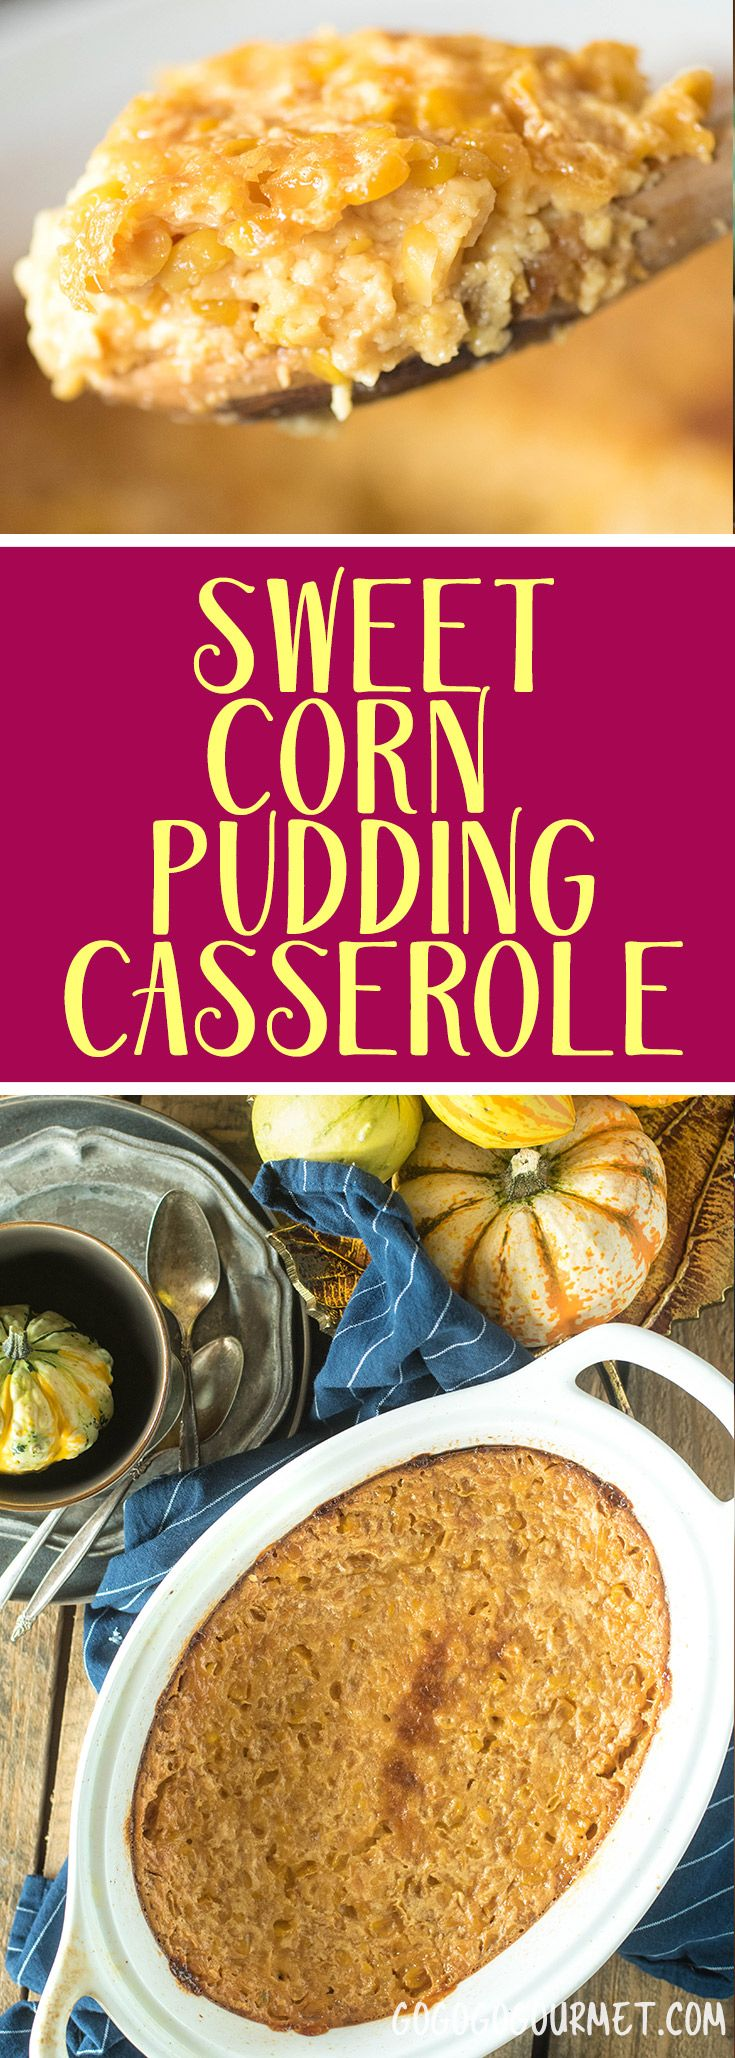 This corn pudding casserole is just a little sweet and a family favorite